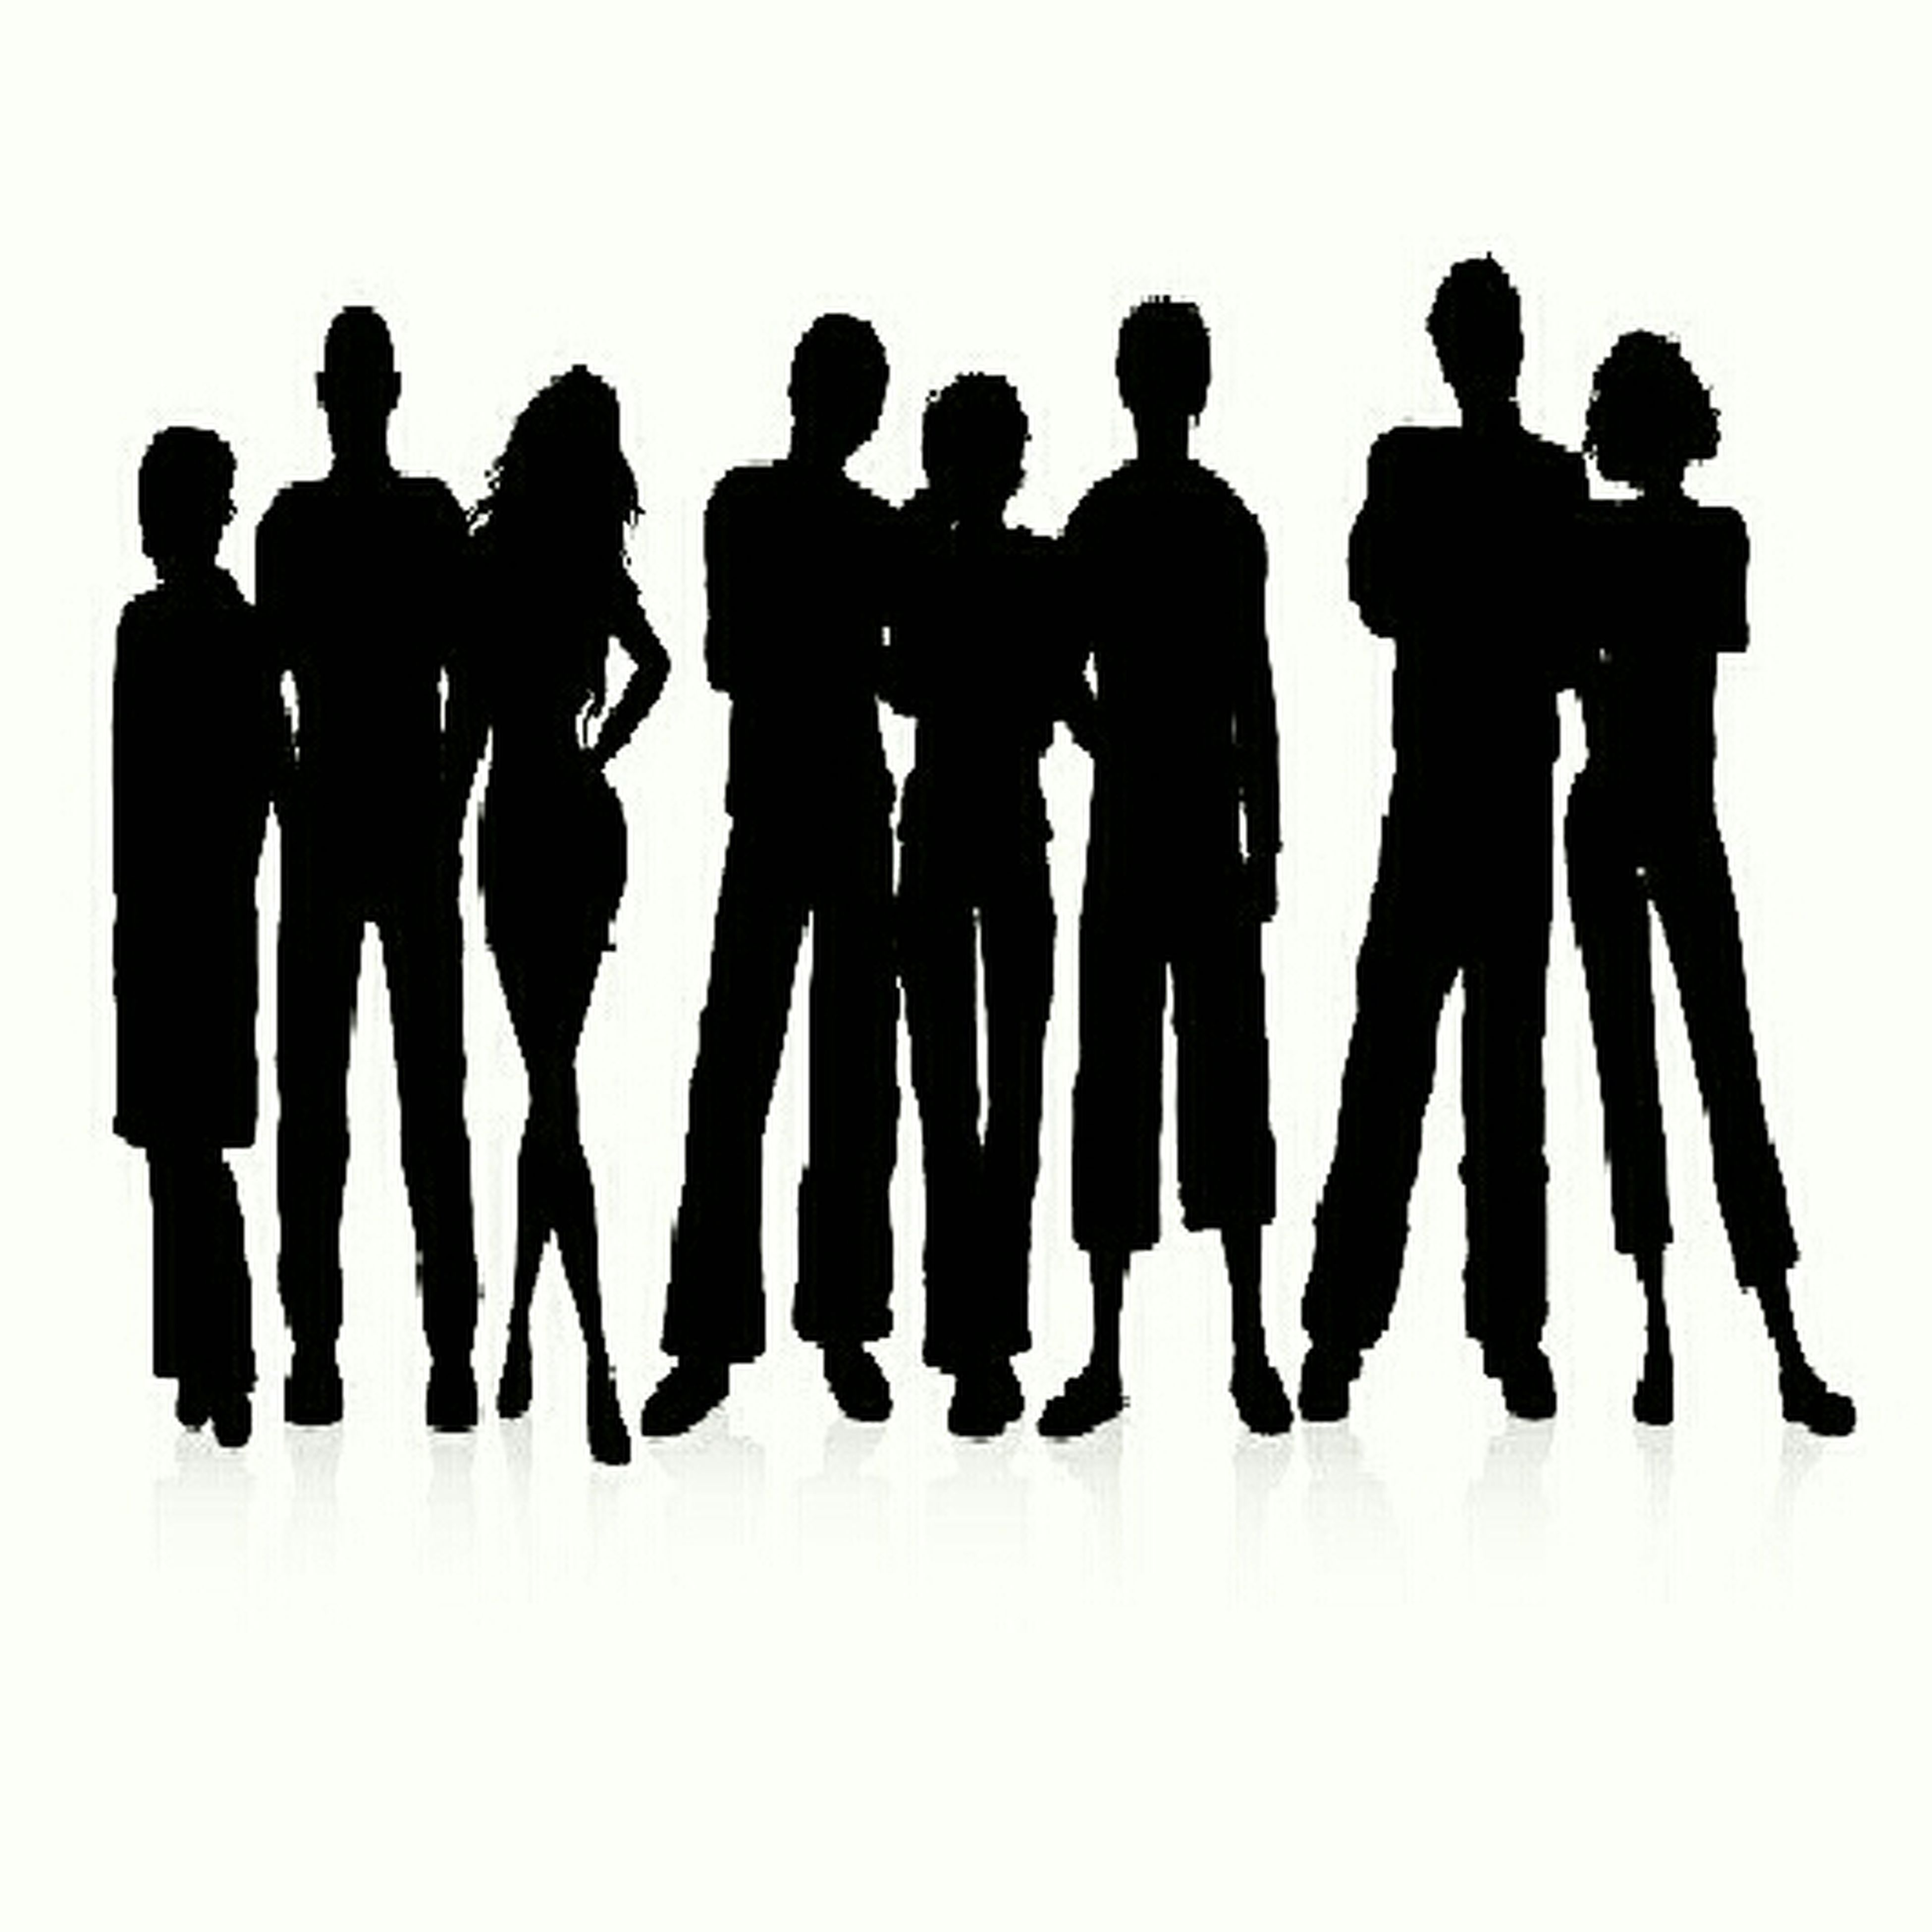 men, togetherness, silhouette, copy space, clear sky, lifestyles, standing, leisure activity, person, side by side, friendship, sky, medium group of people, outdoors, bonding, low angle view